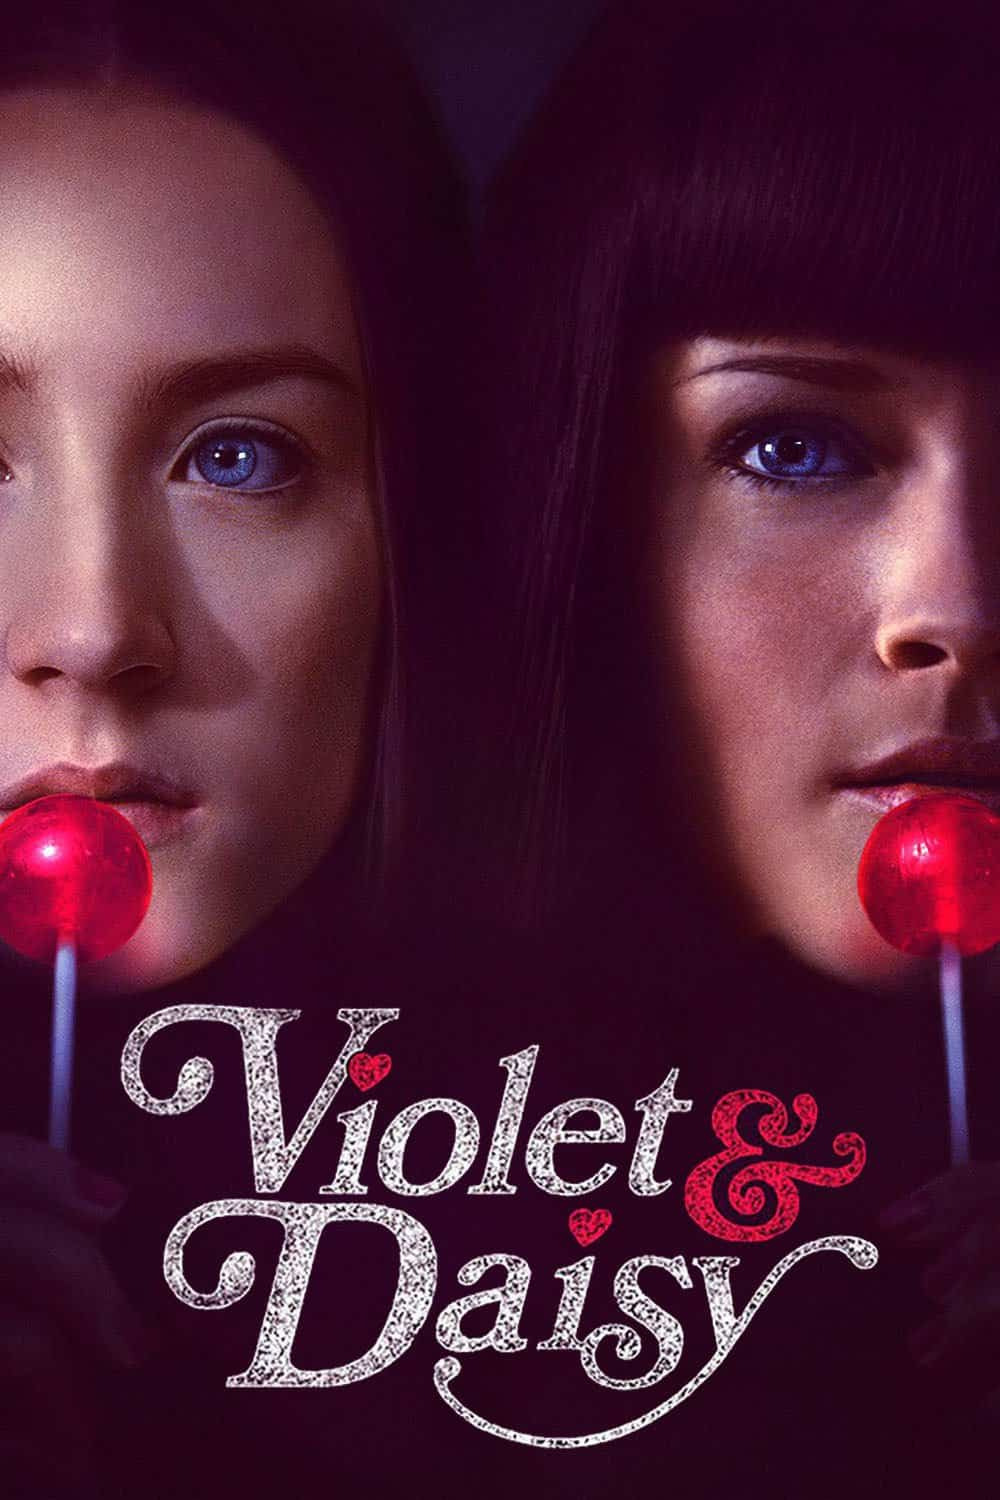 Violet and Daisy, 2011